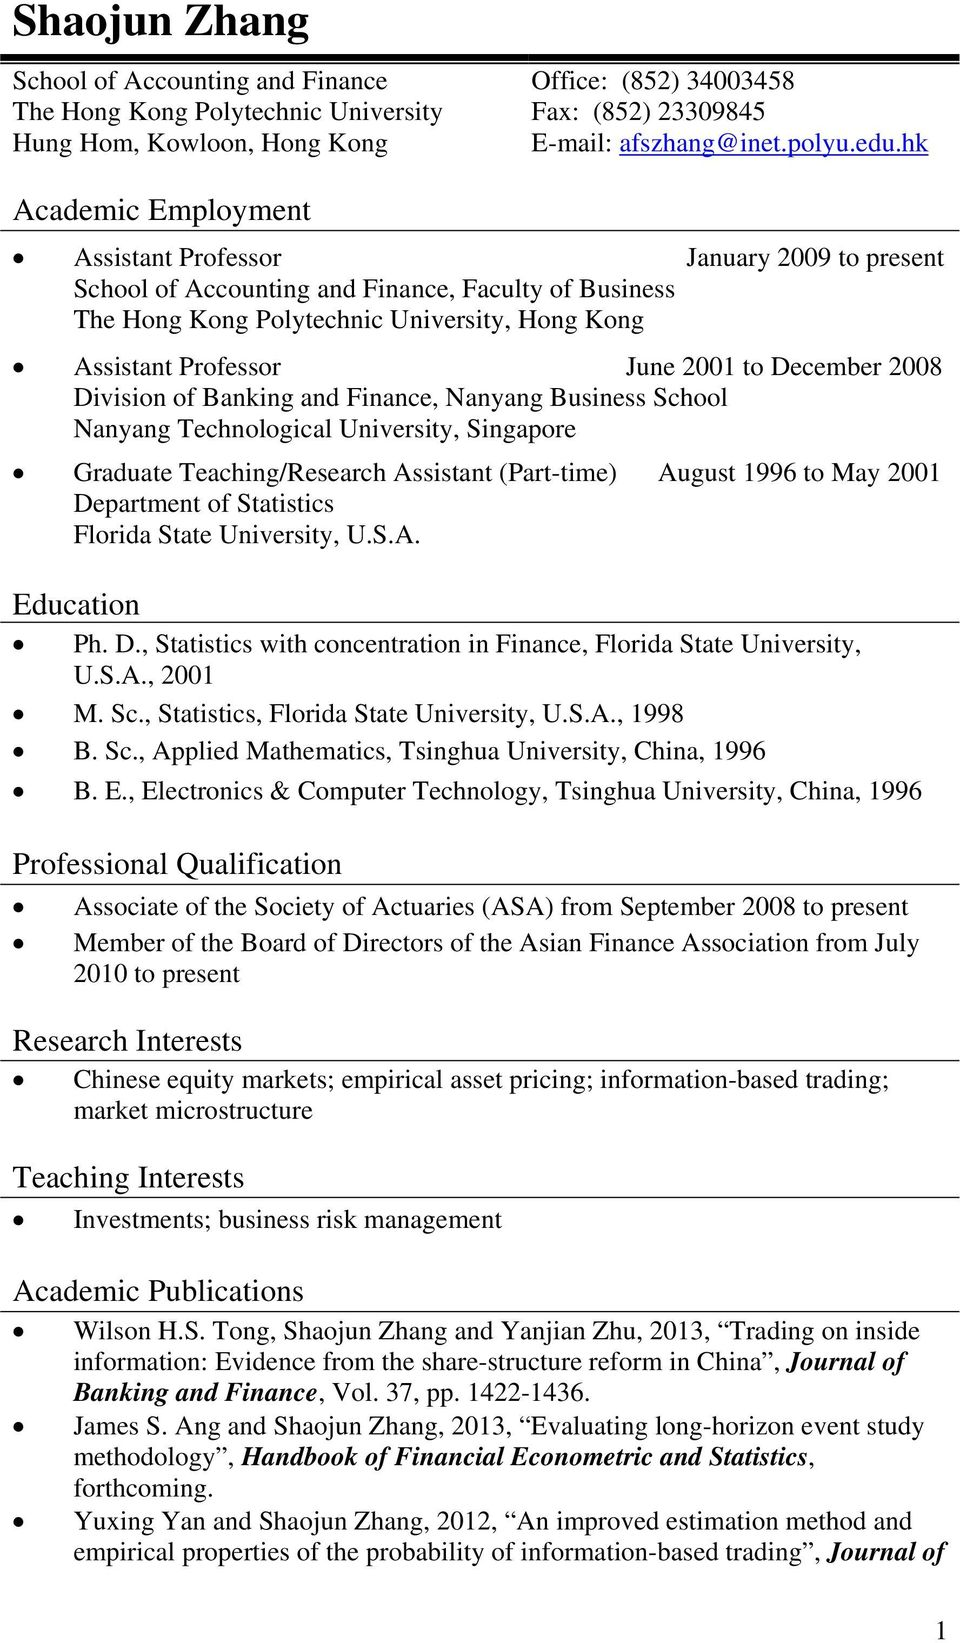 to December 2008 Division of Banking and Finance, Nanyang Business School Nanyang Technological University, Singapore Graduate Teaching/Research Assistant (Part-time) August 1996 to May 2001